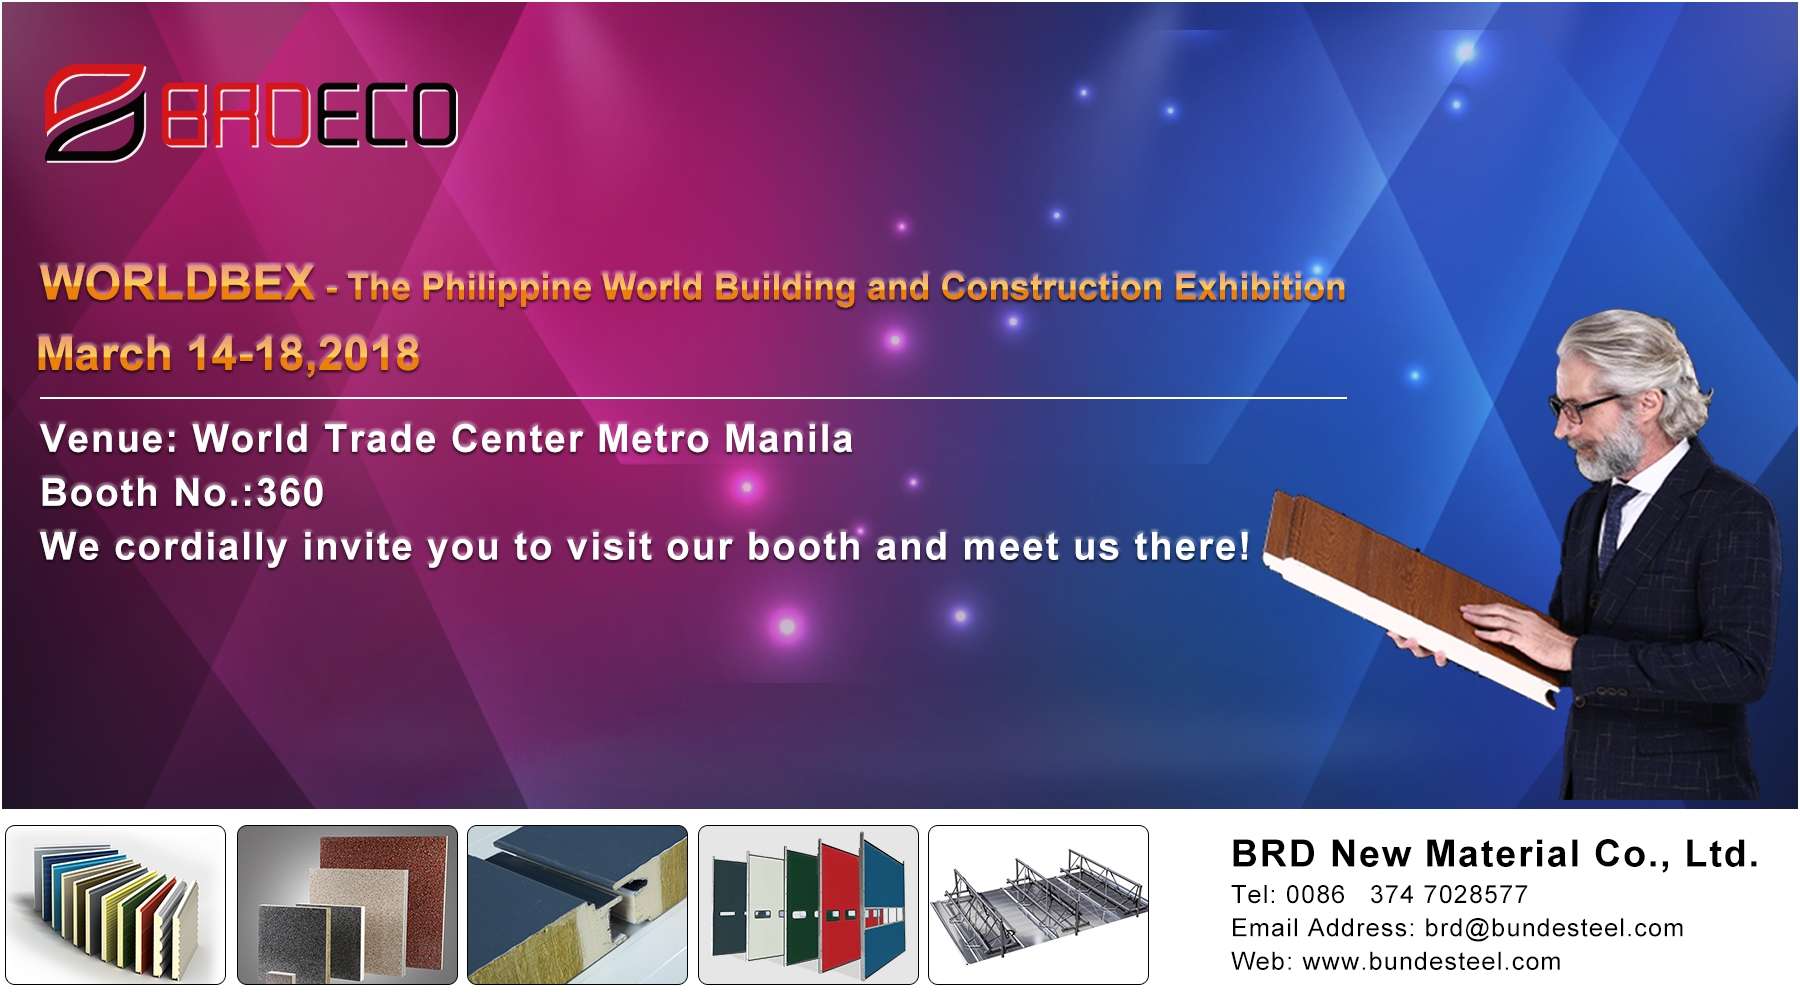 <b><font color='#660000'>WORLDBEX - The Philippine World Building and Construction Exhibition</font></b>